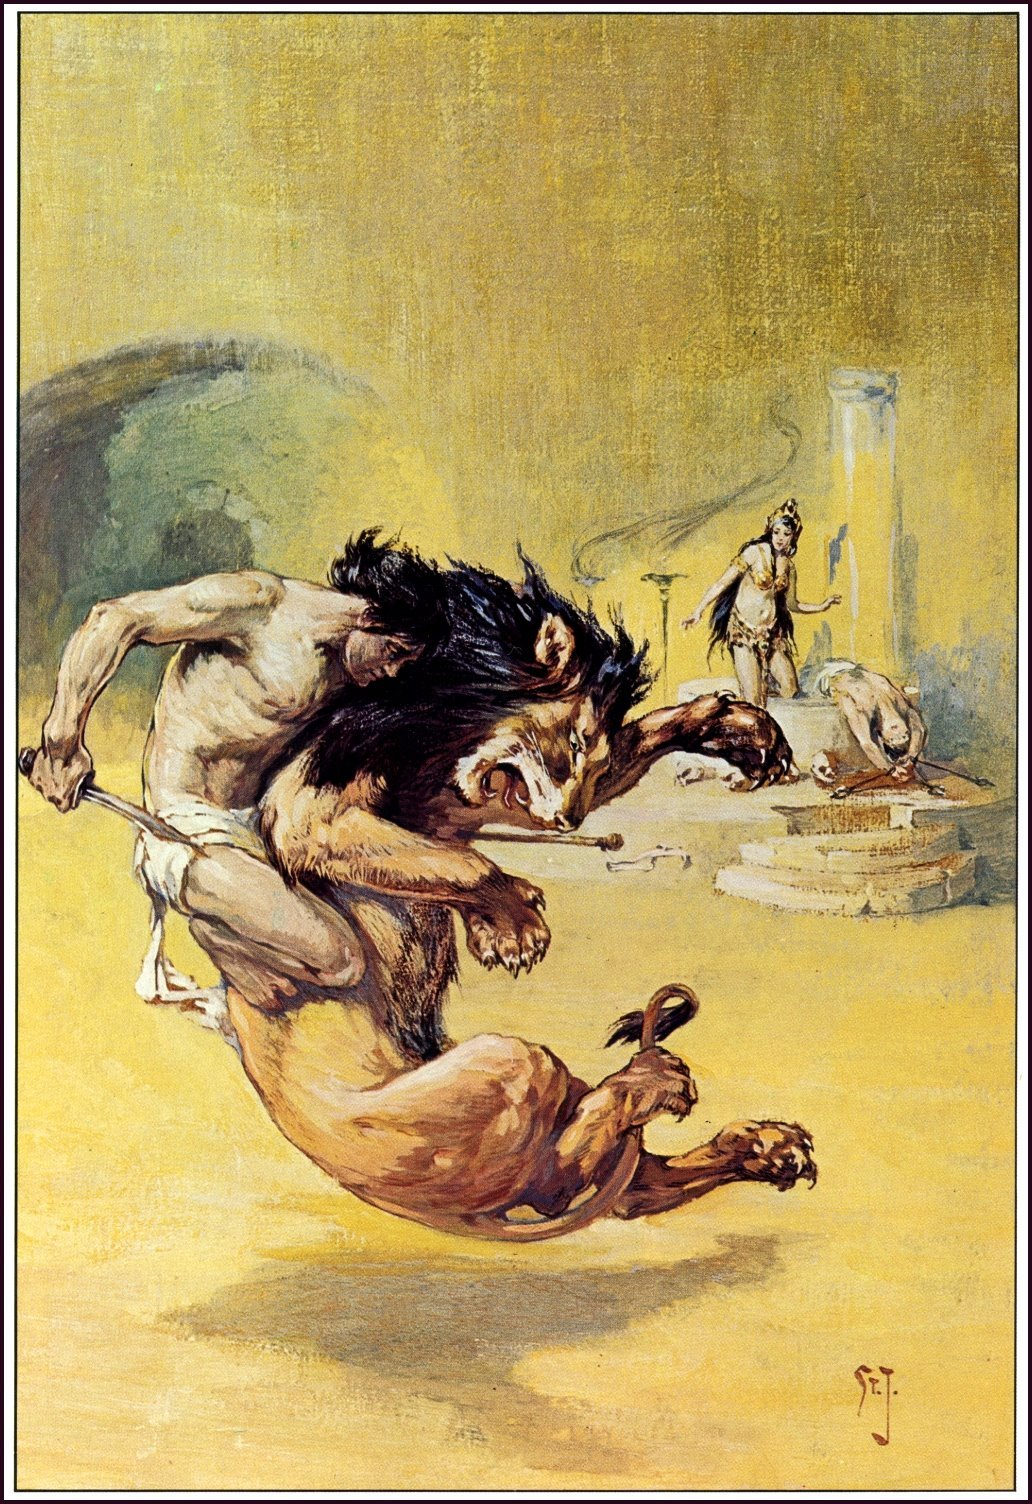 A Rare Glimpse of Edgar Rice Burroughs' Favorite Illustrator, J. Allen St. John